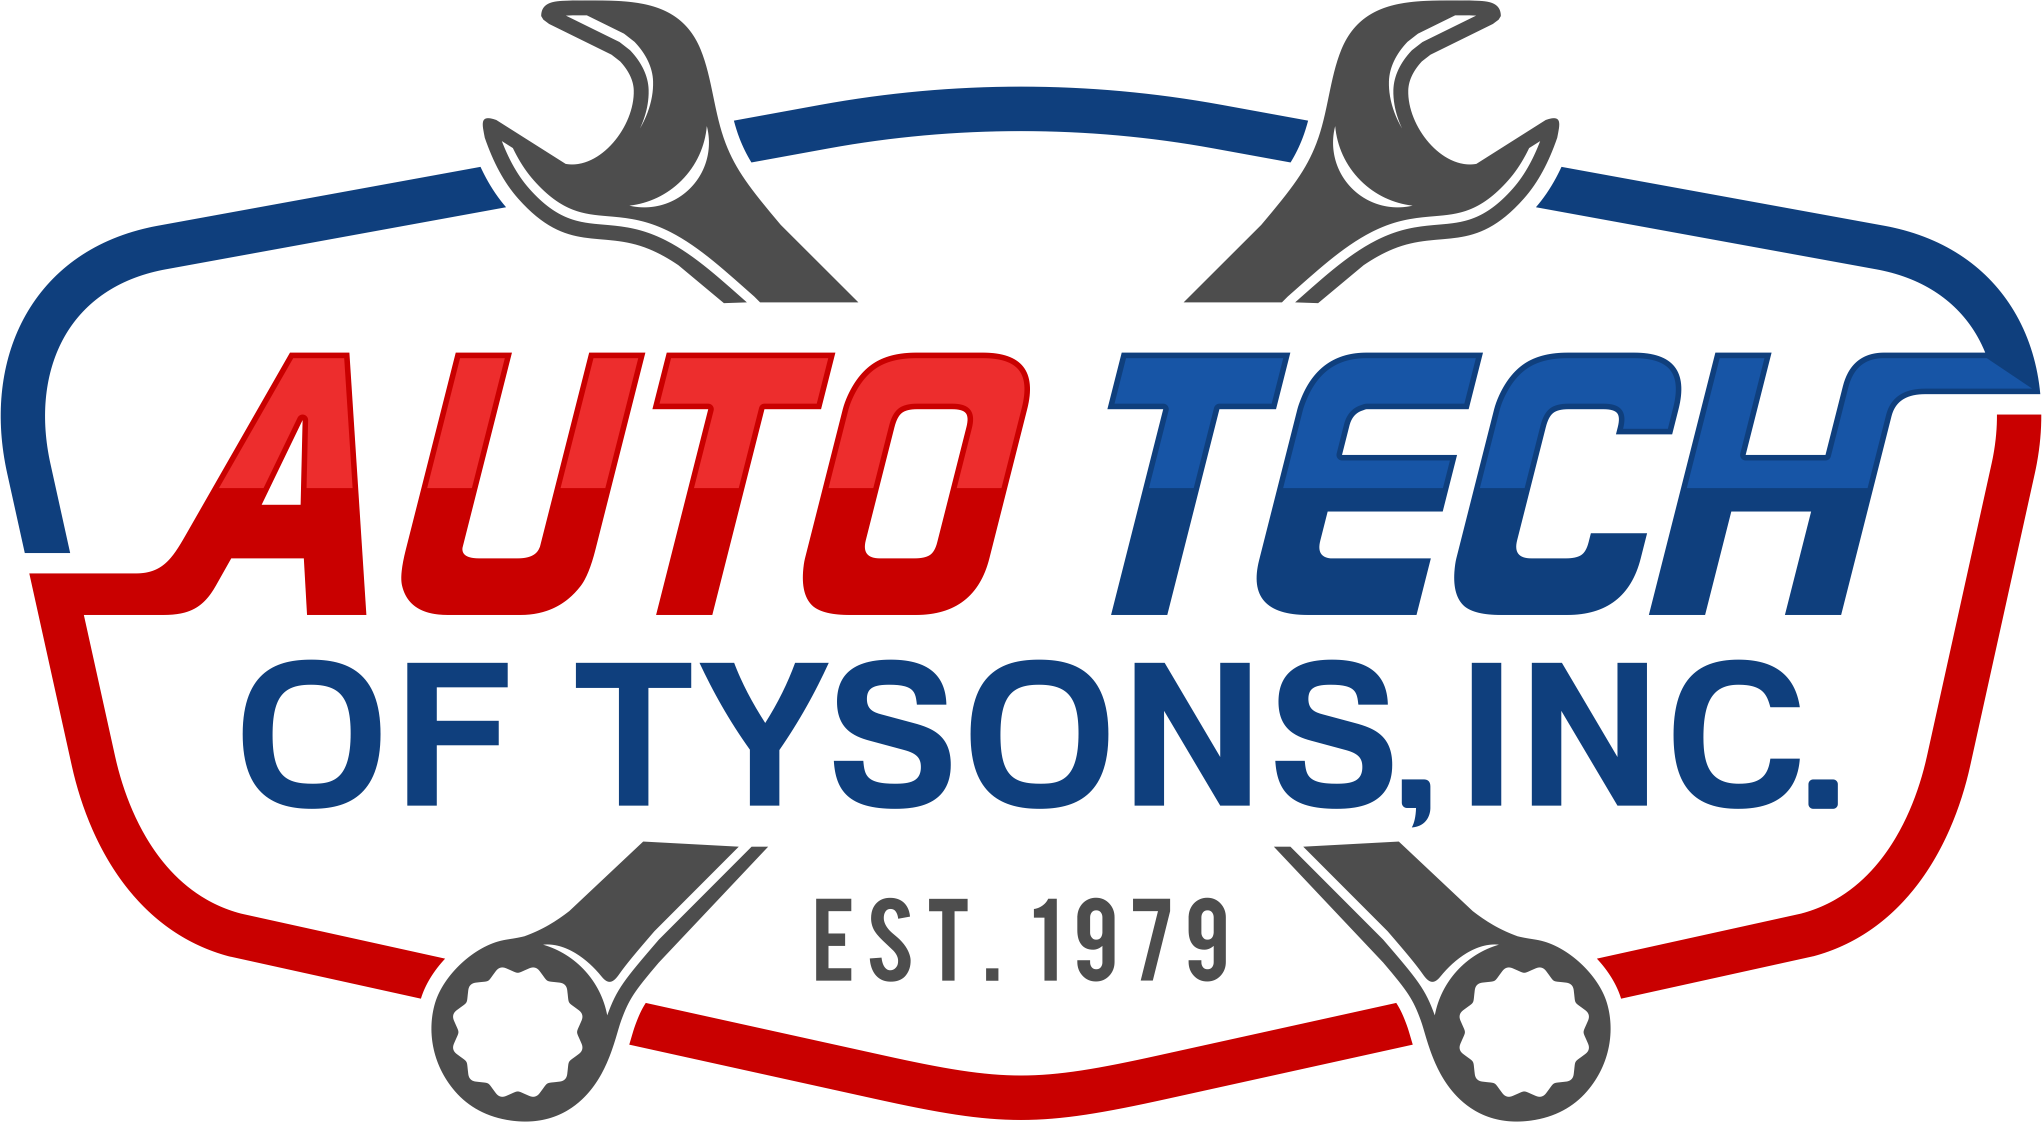 Auto Tech of Tysons, Inc.